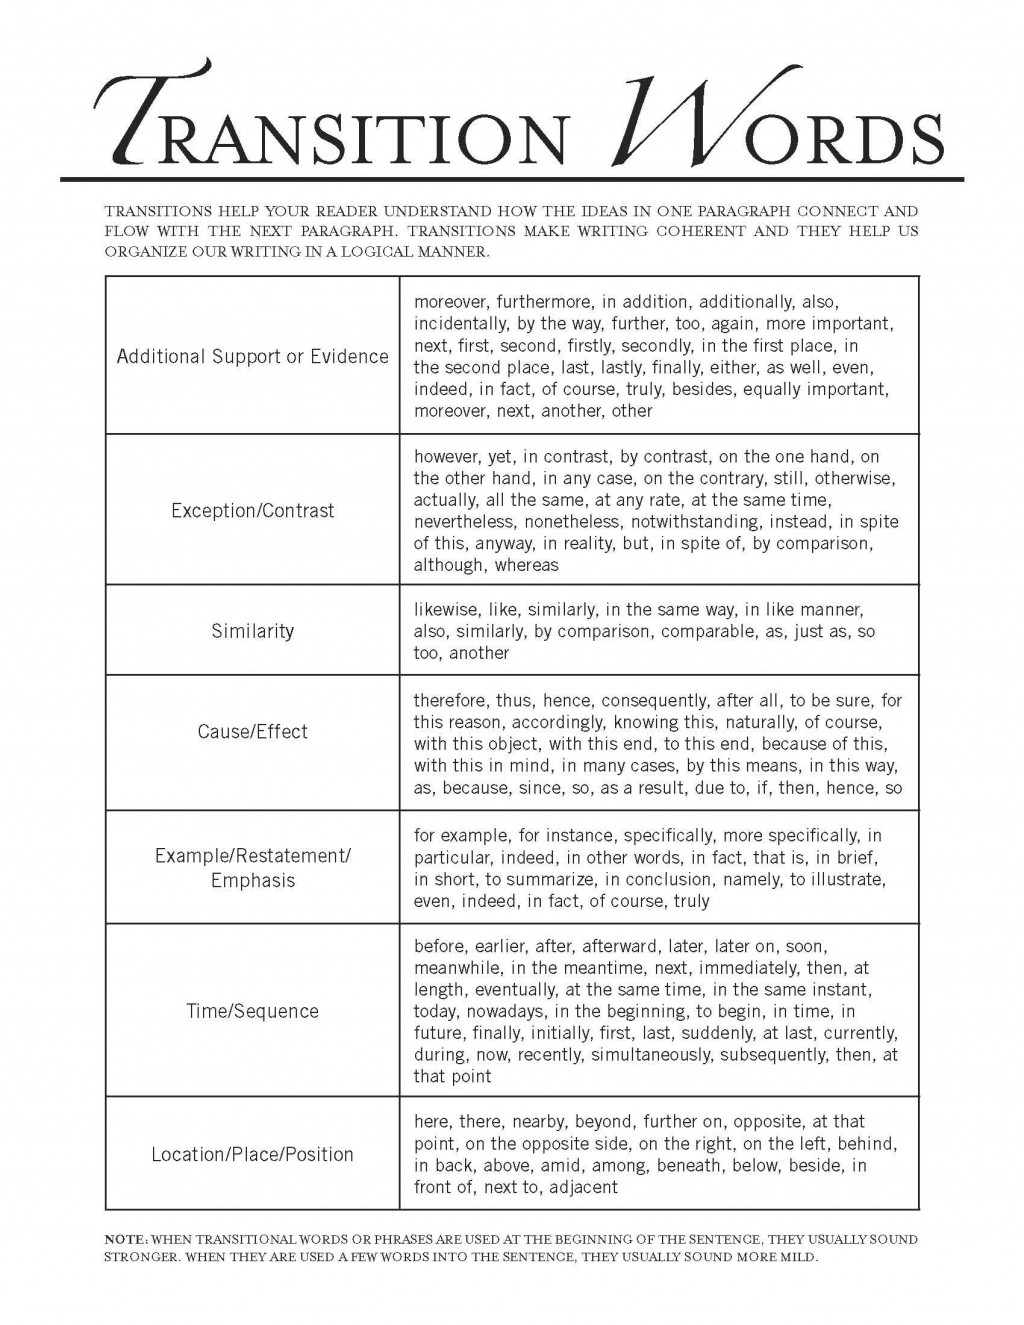 003 Transition Words For Essay Fascinating Essays Between Paragraphs Writing An Argumentative In Spanish Large